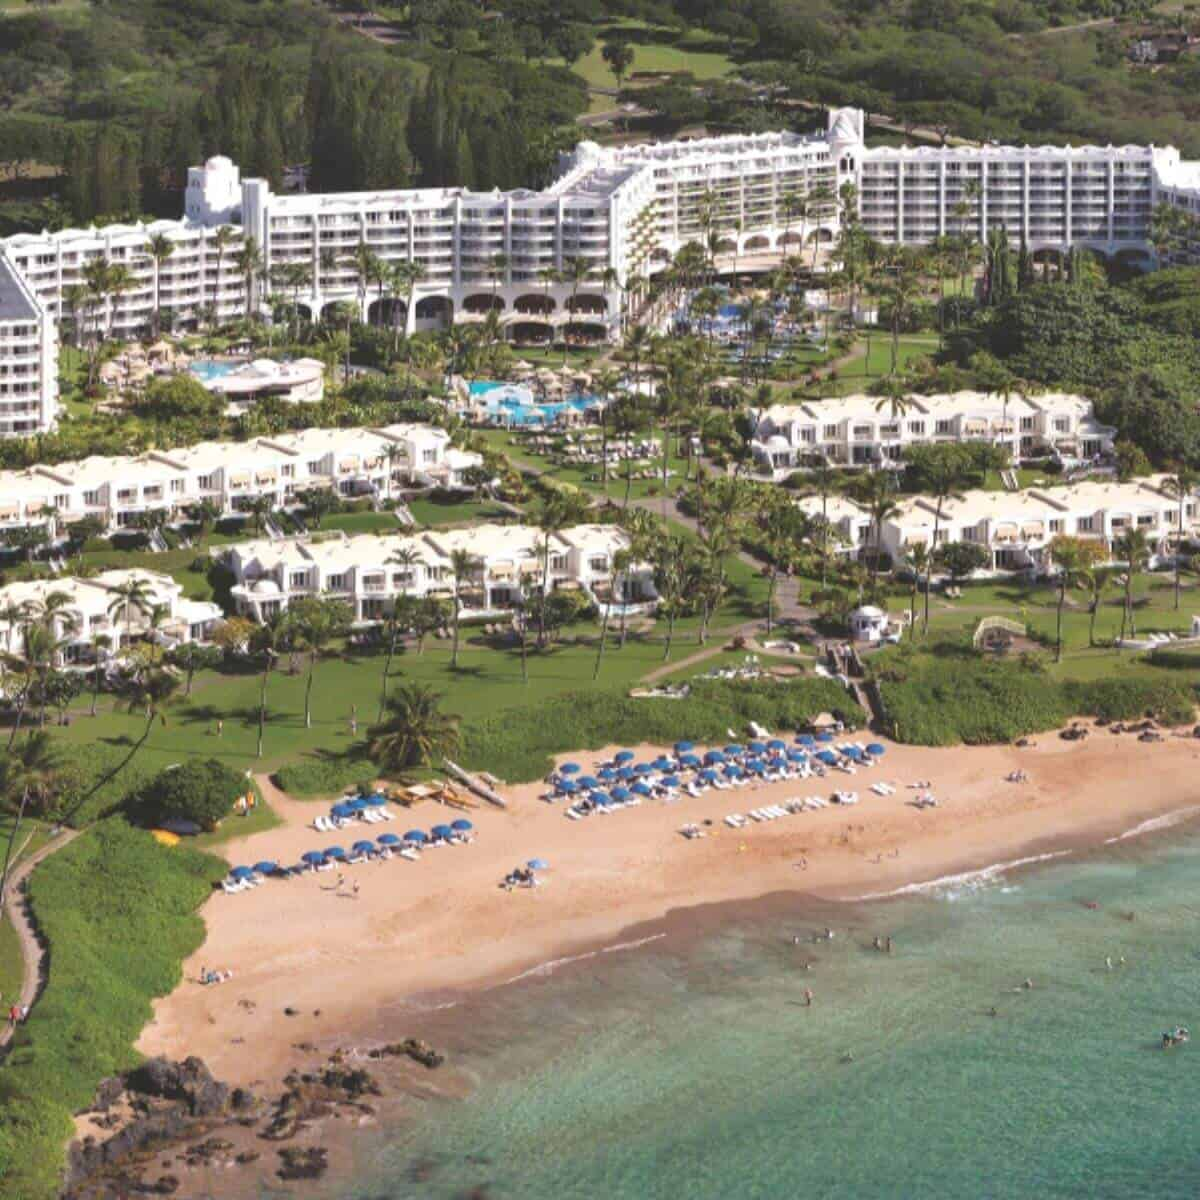 Aerial view of the beach and Fairmont Kea Lani resort.